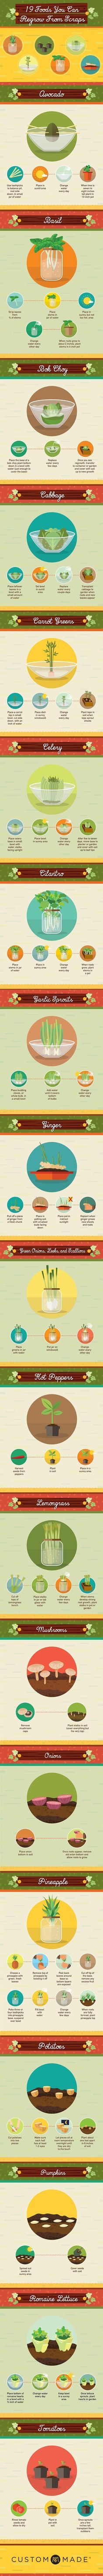 For other gardening tips head over to Mind, Body, & Soul After Baby ~ http://www.mindbodyandsoulafterbaby.com/food/gardening/